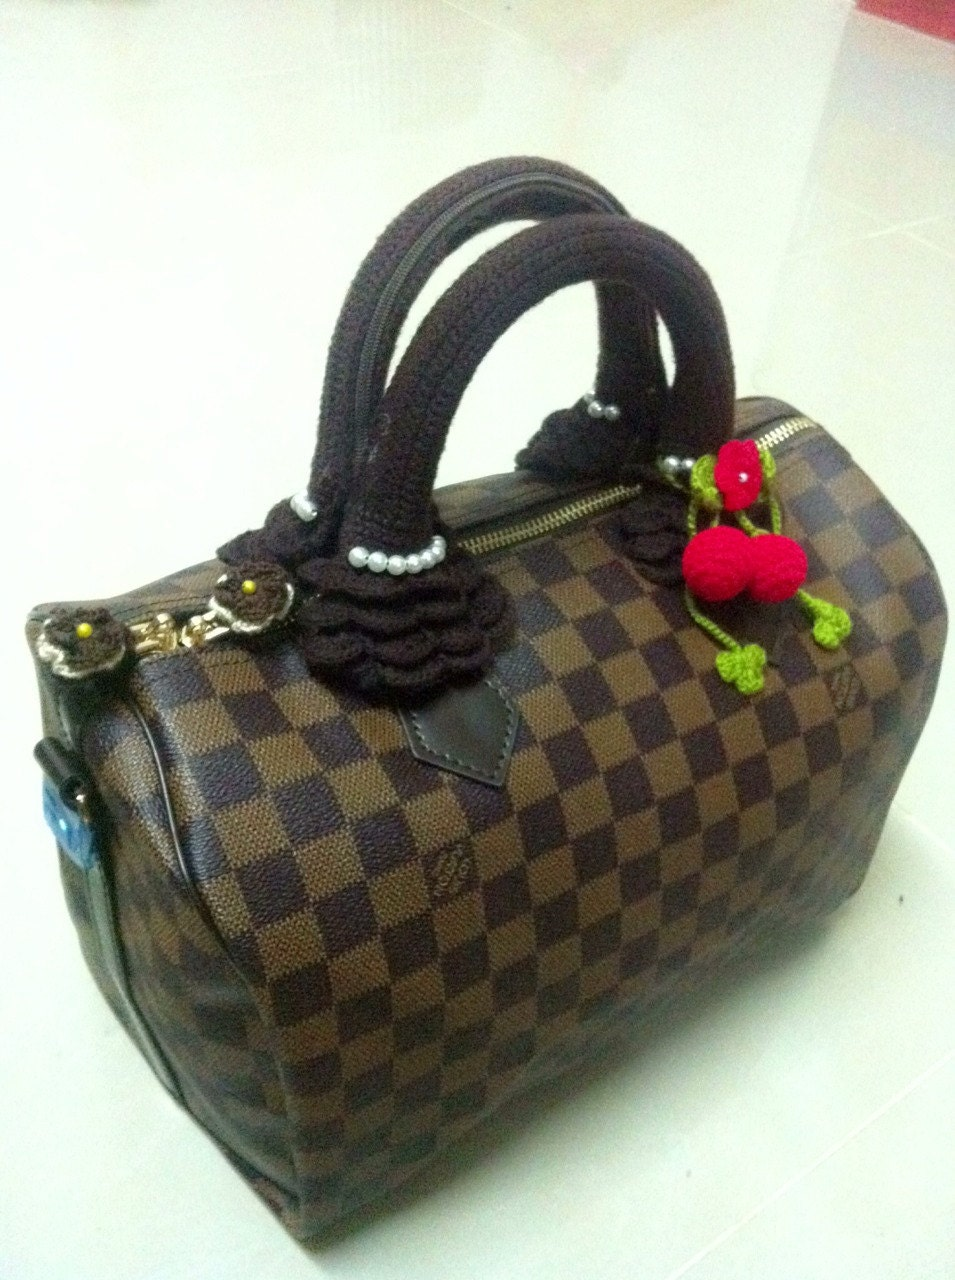 Crochet Bag Handle Cover Pattern : Bag Handle.Louis Vuitton handle covers for LV SPEEDY crochet